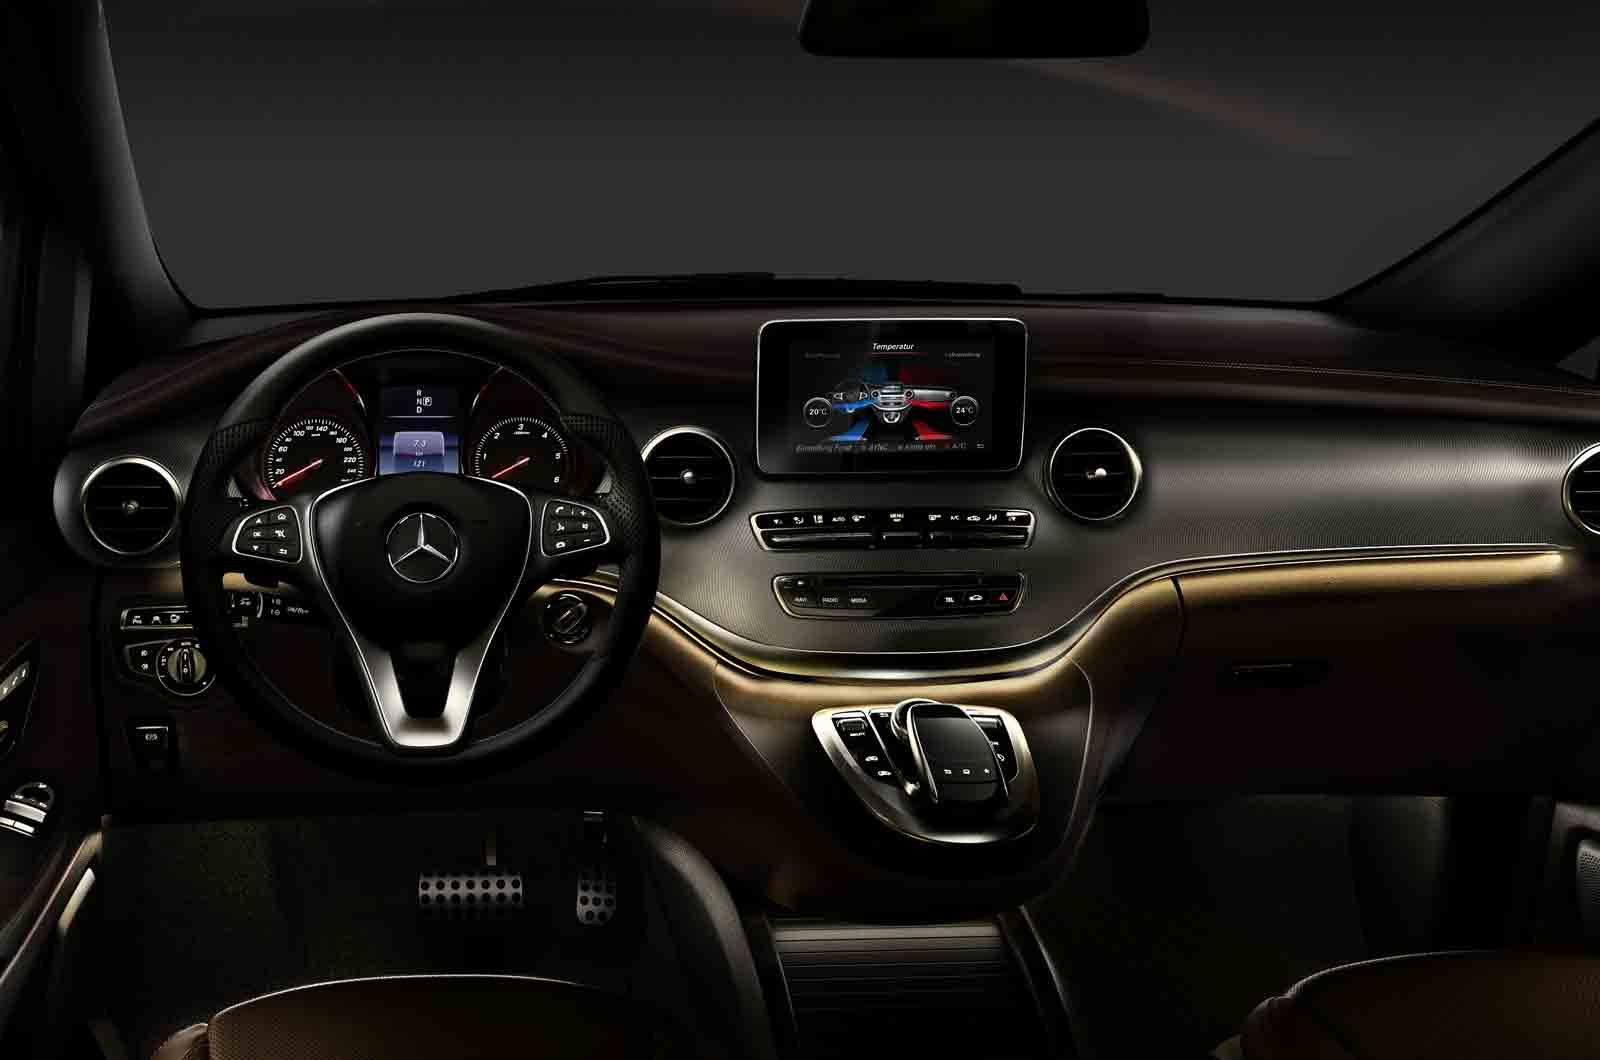 The Interior Of The Mercedes Benz V Class